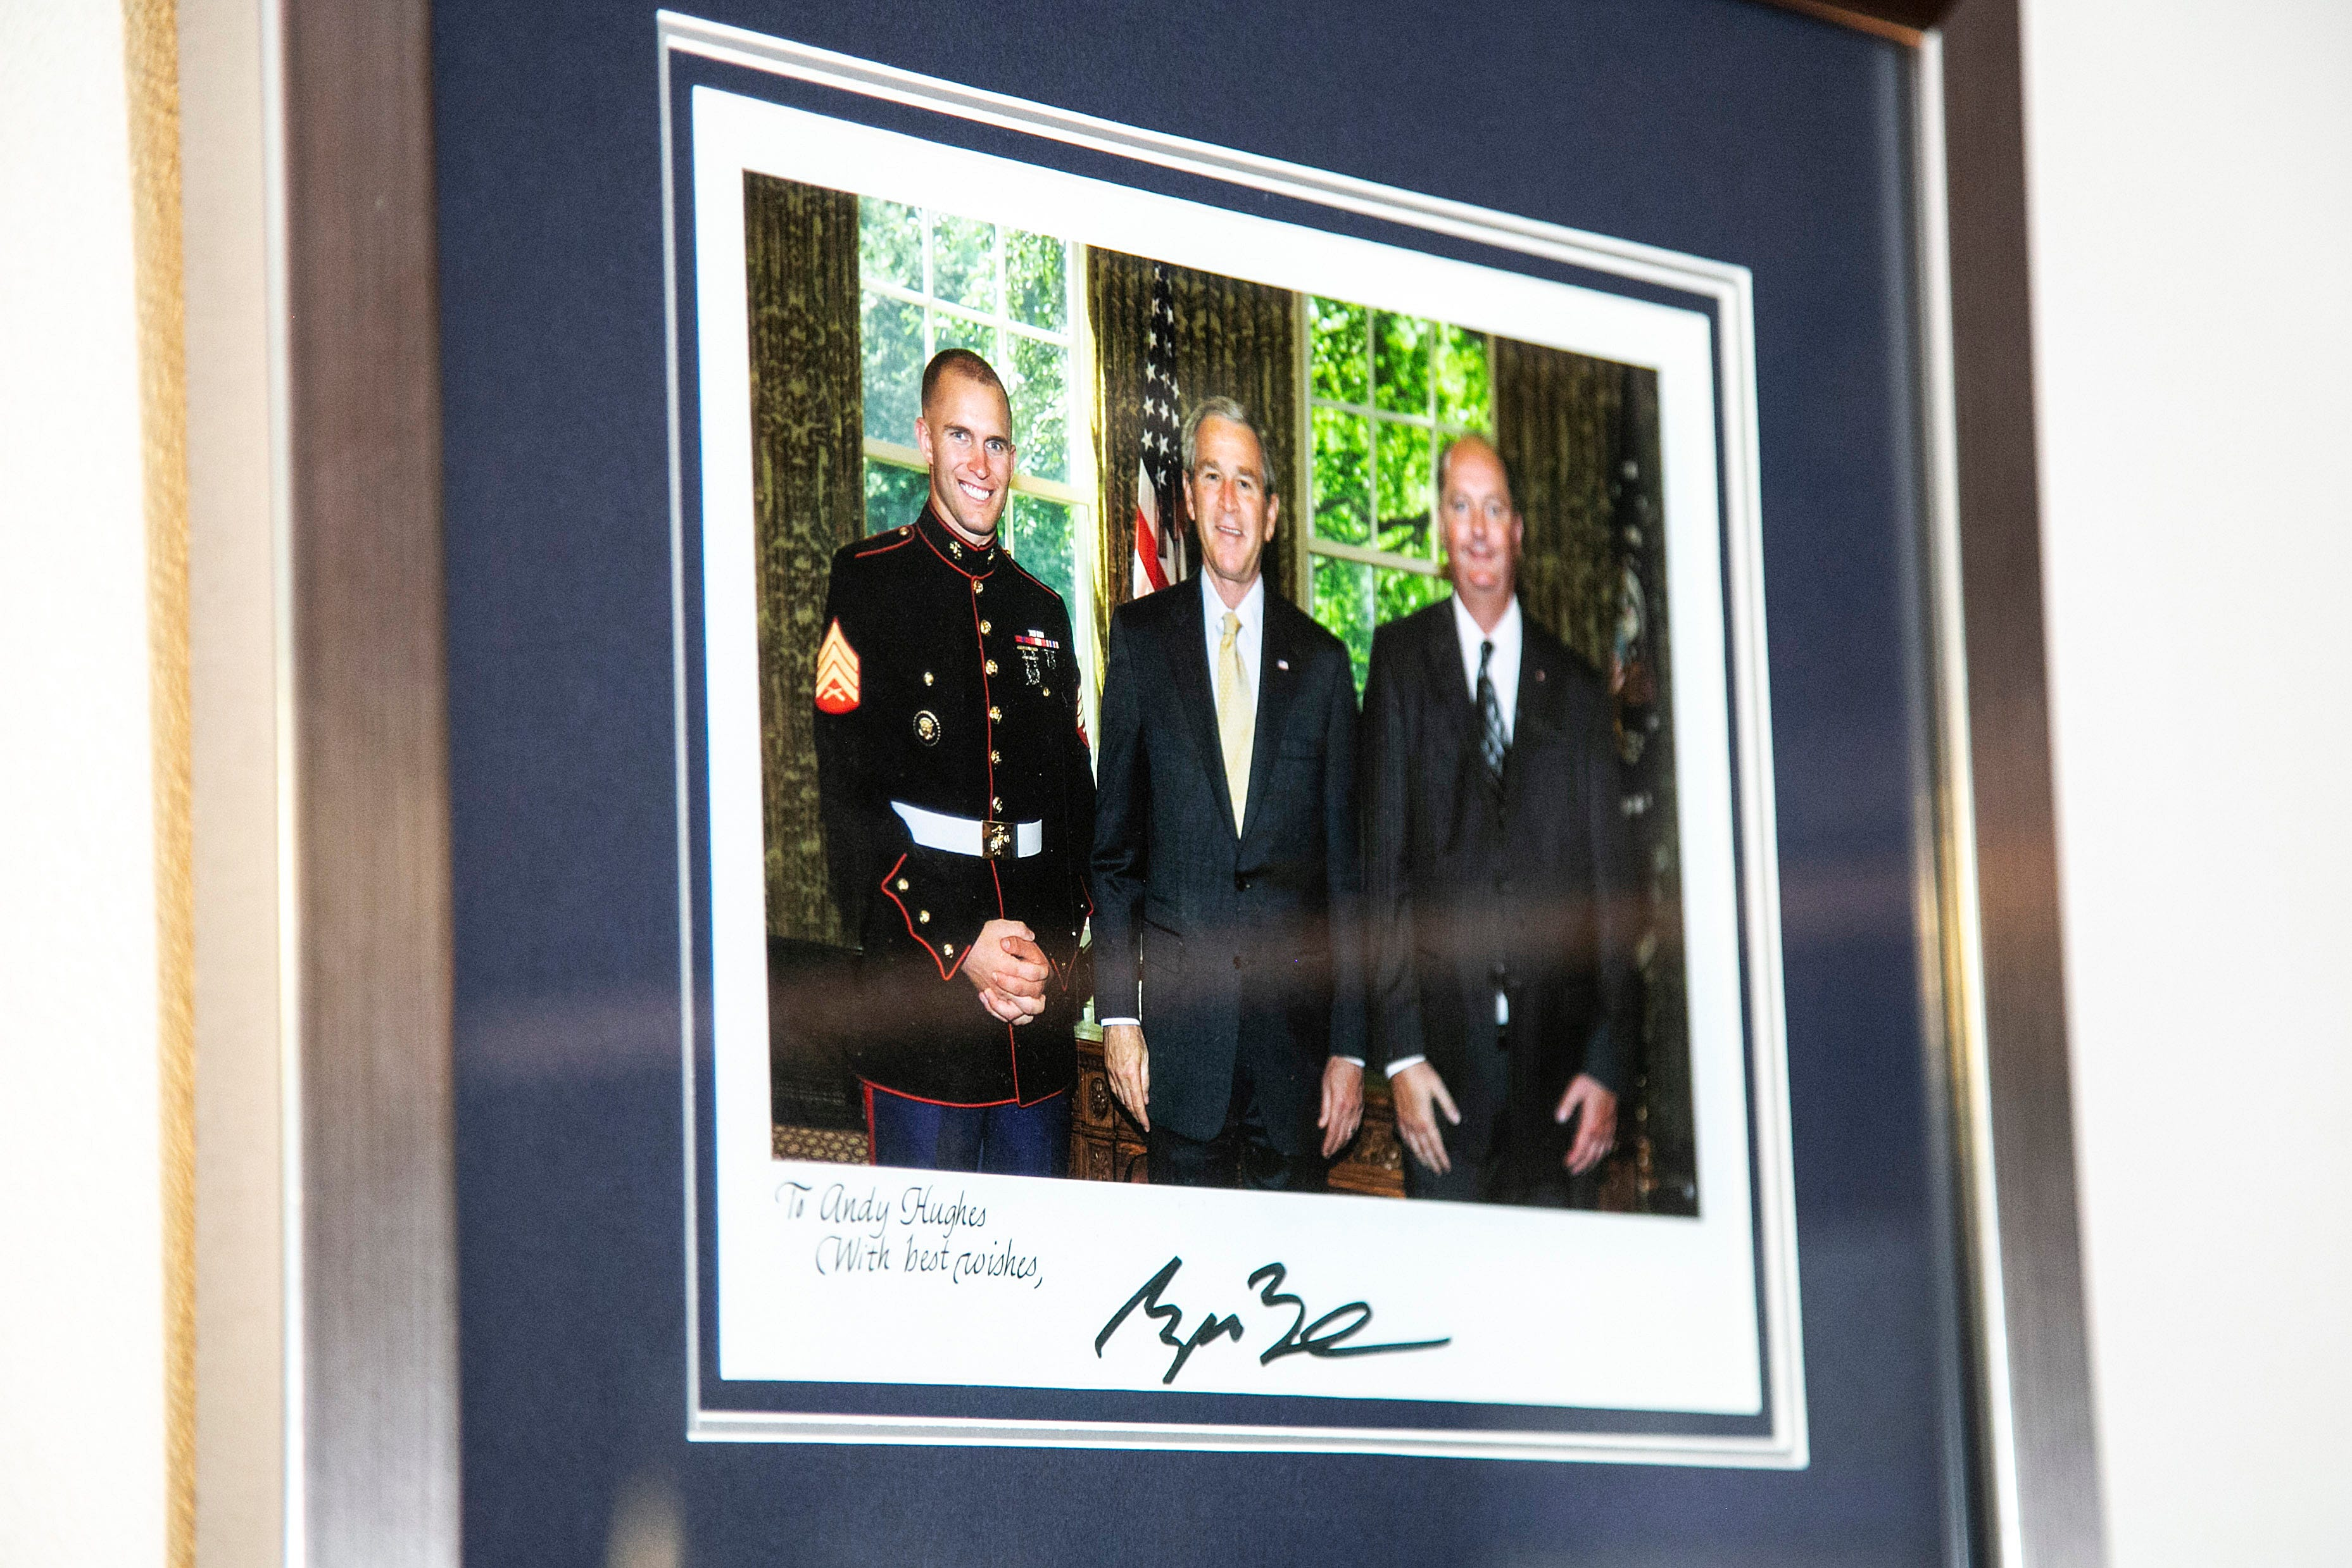 Andy Hughes, left, and his father met President George W. Bush.